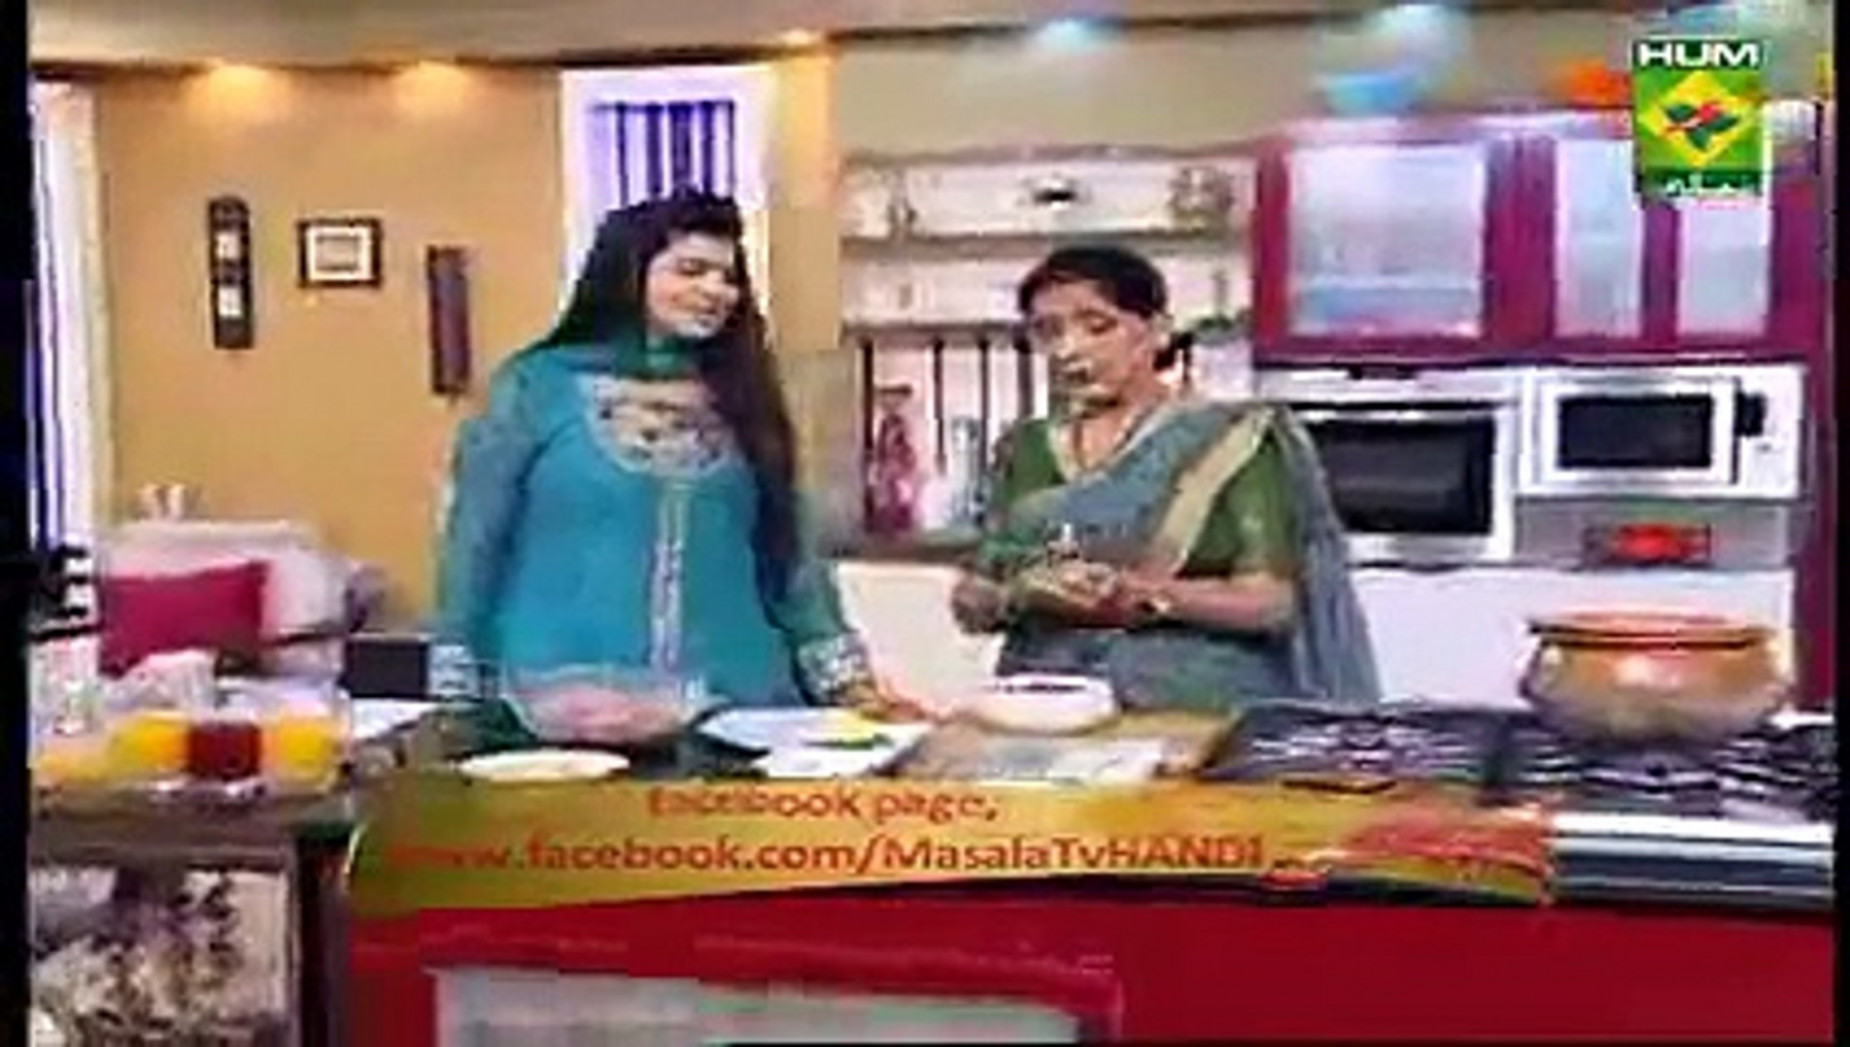 Handi- Chicken Makhni Handi Recipe by Zubaida Tariq Masala TV 12 May 12 - chicken recipes zubaida tariq